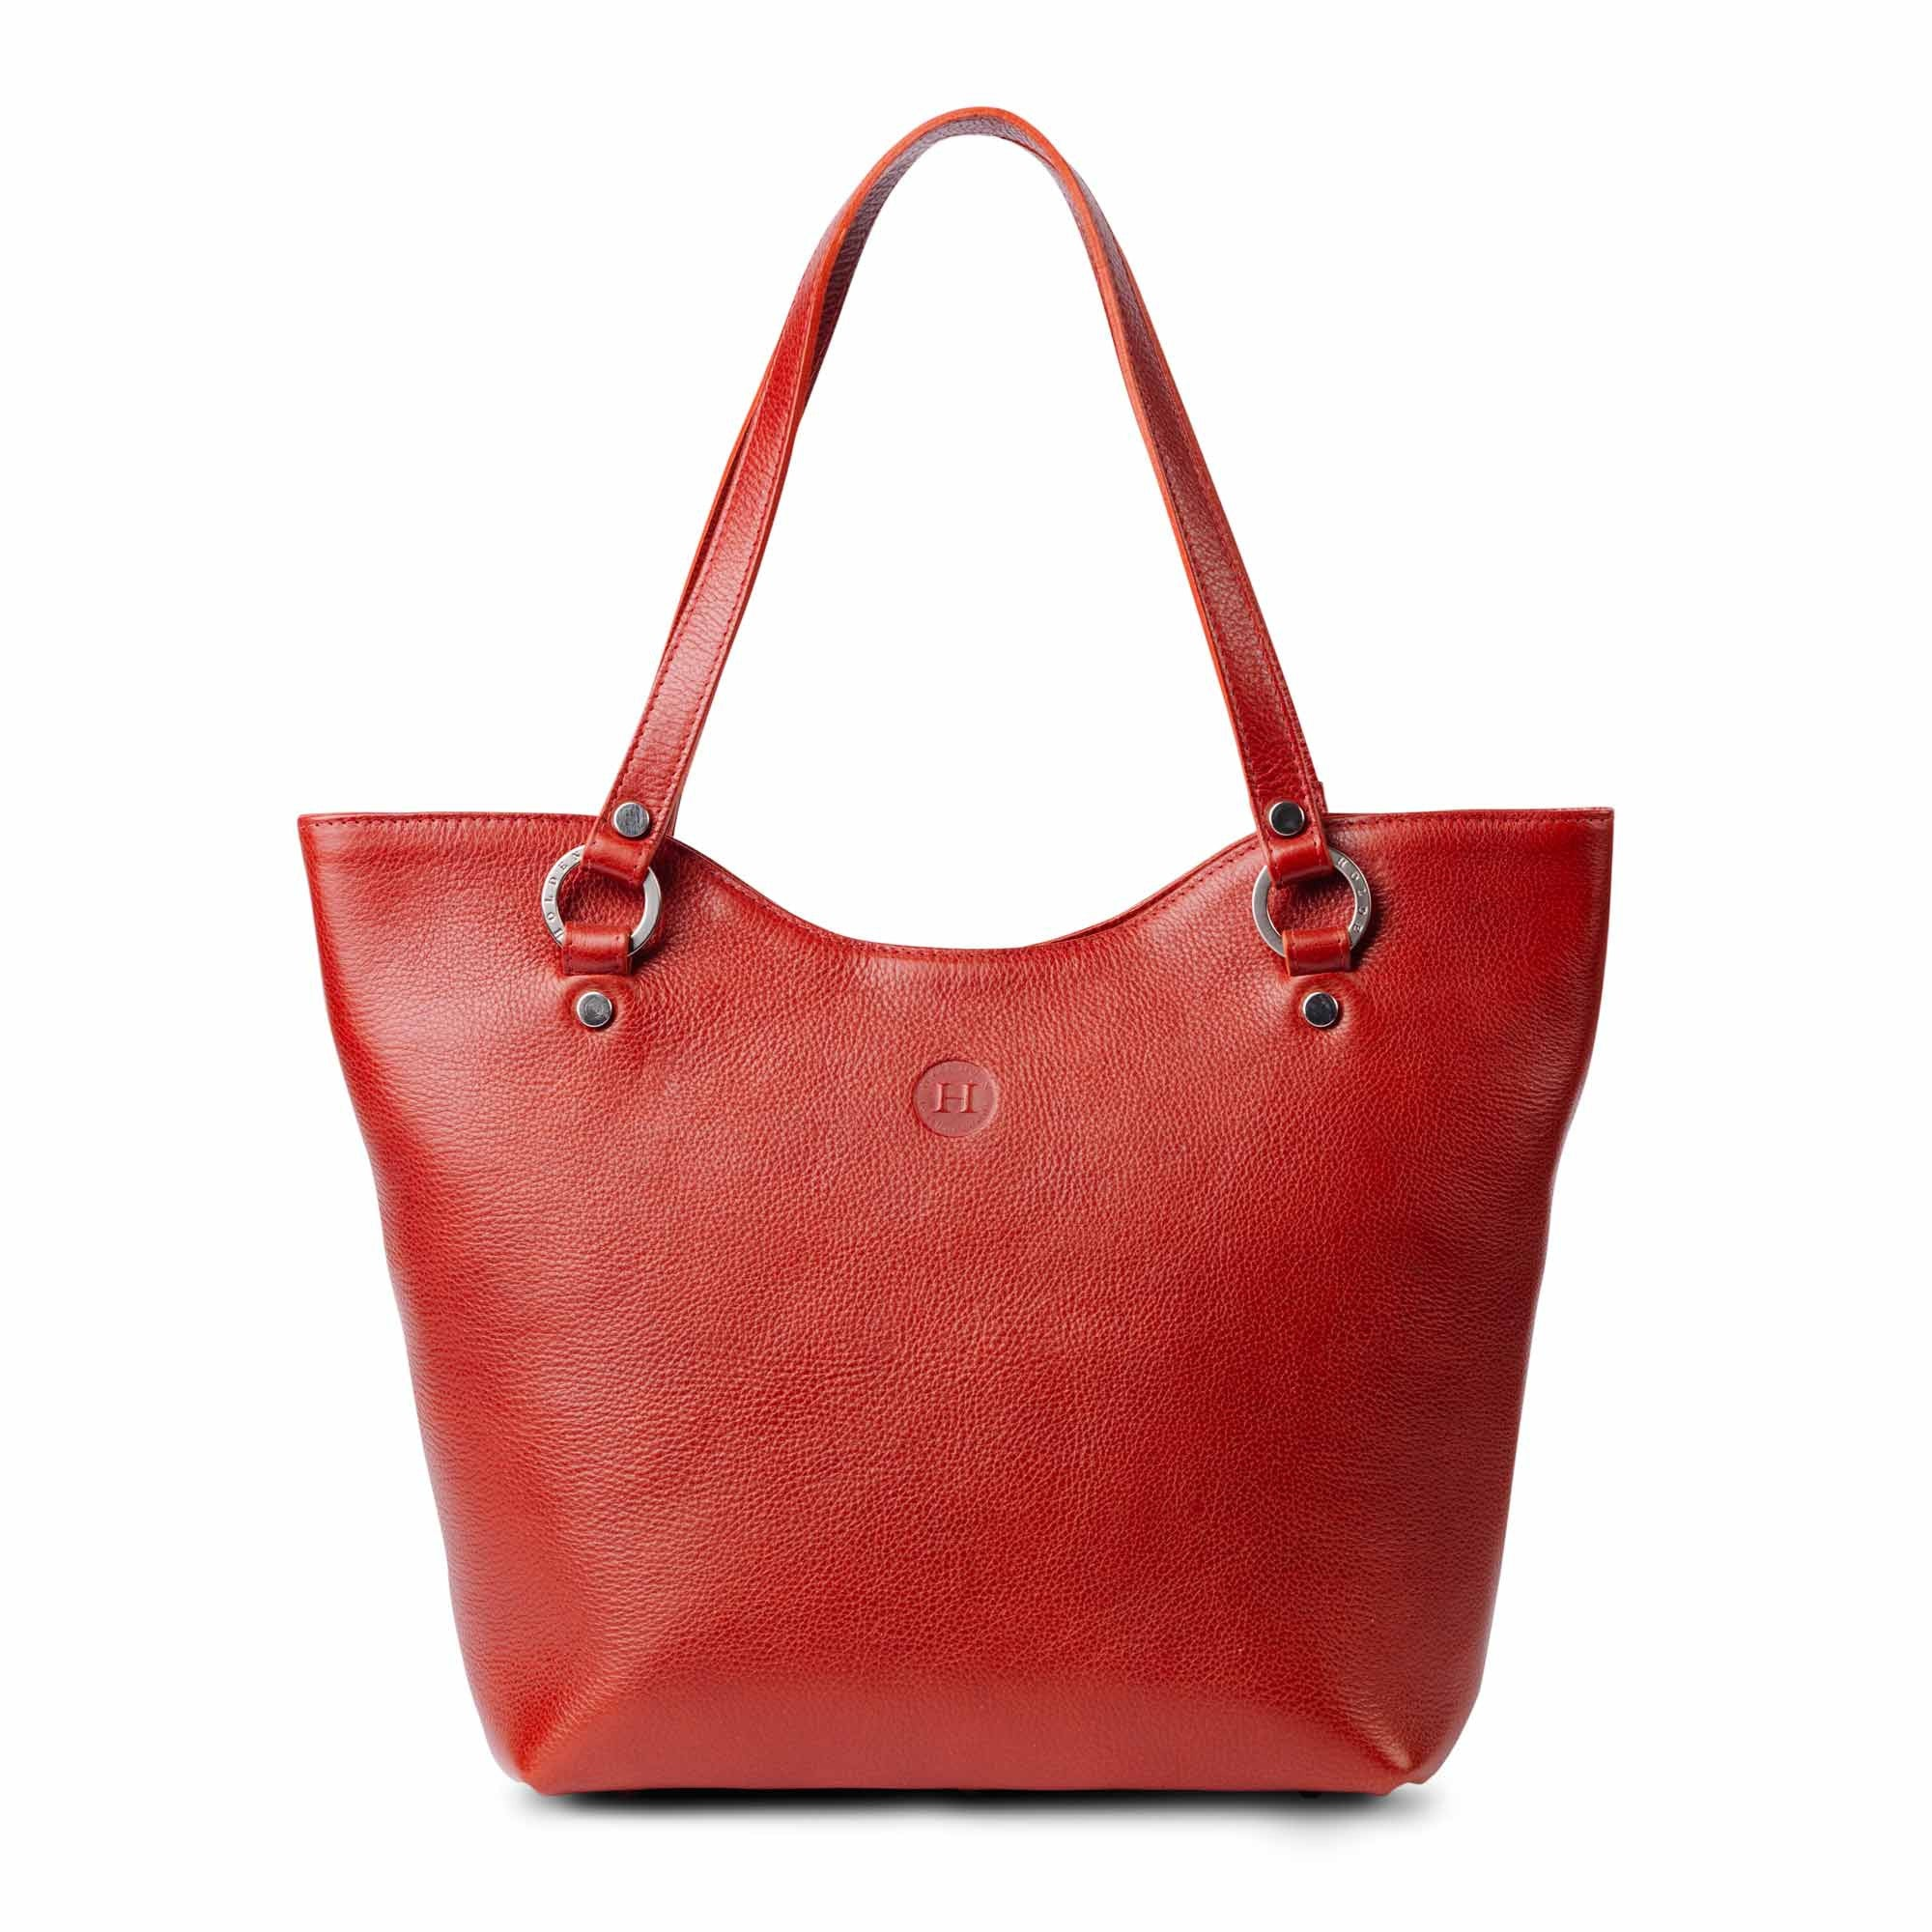 Caitlin Large Leather Tote Red - Holden Leathergoods, leather bags handmade in Ireland